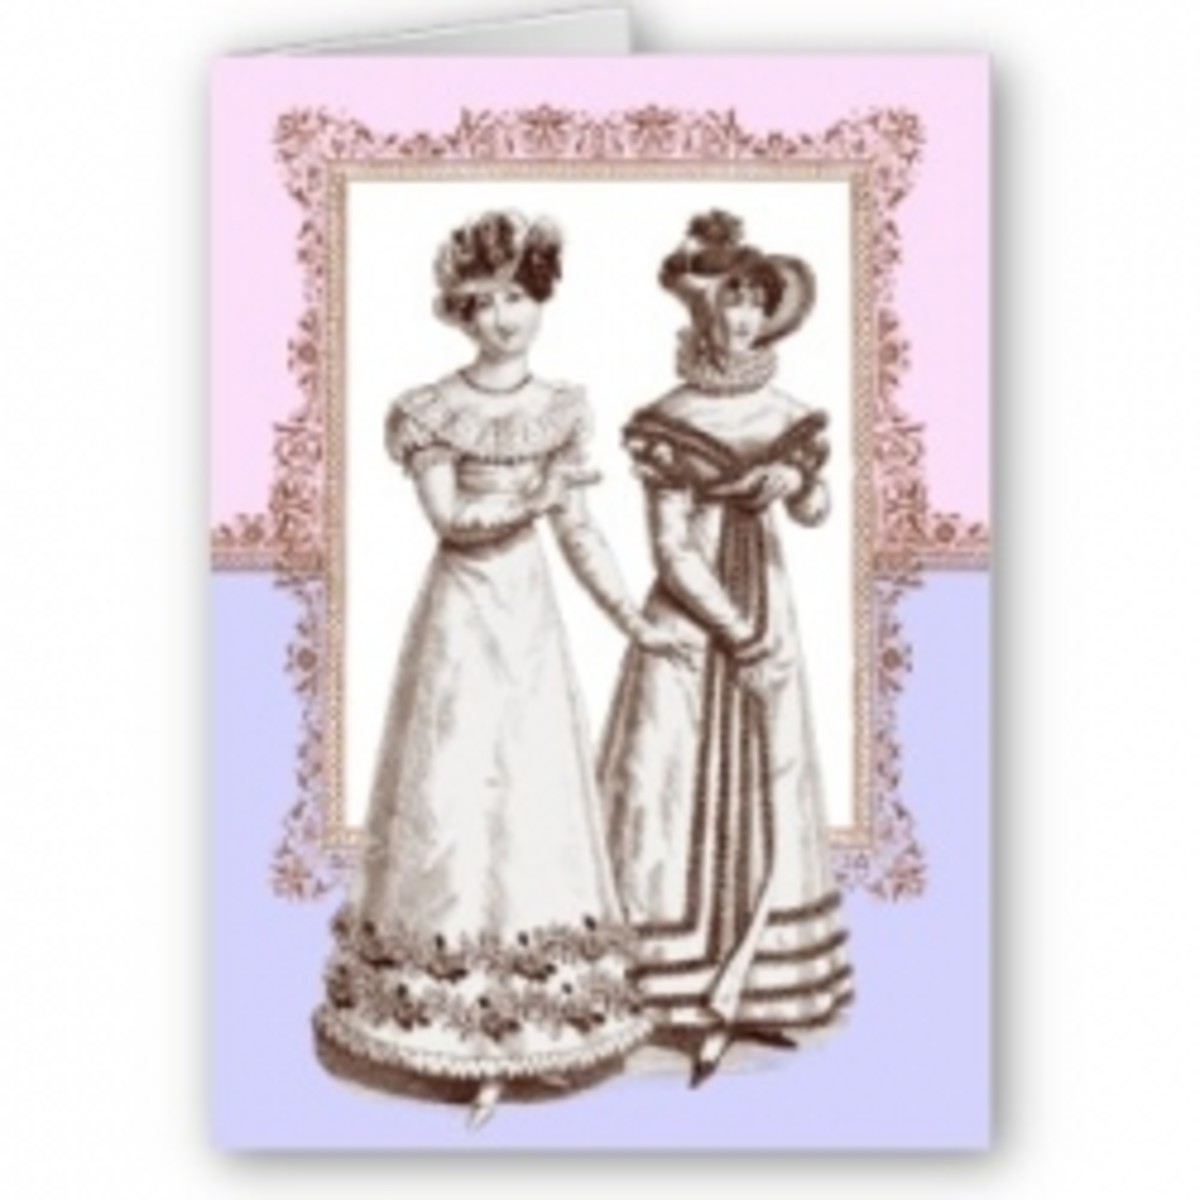 The delightful clothing from the Regency era.